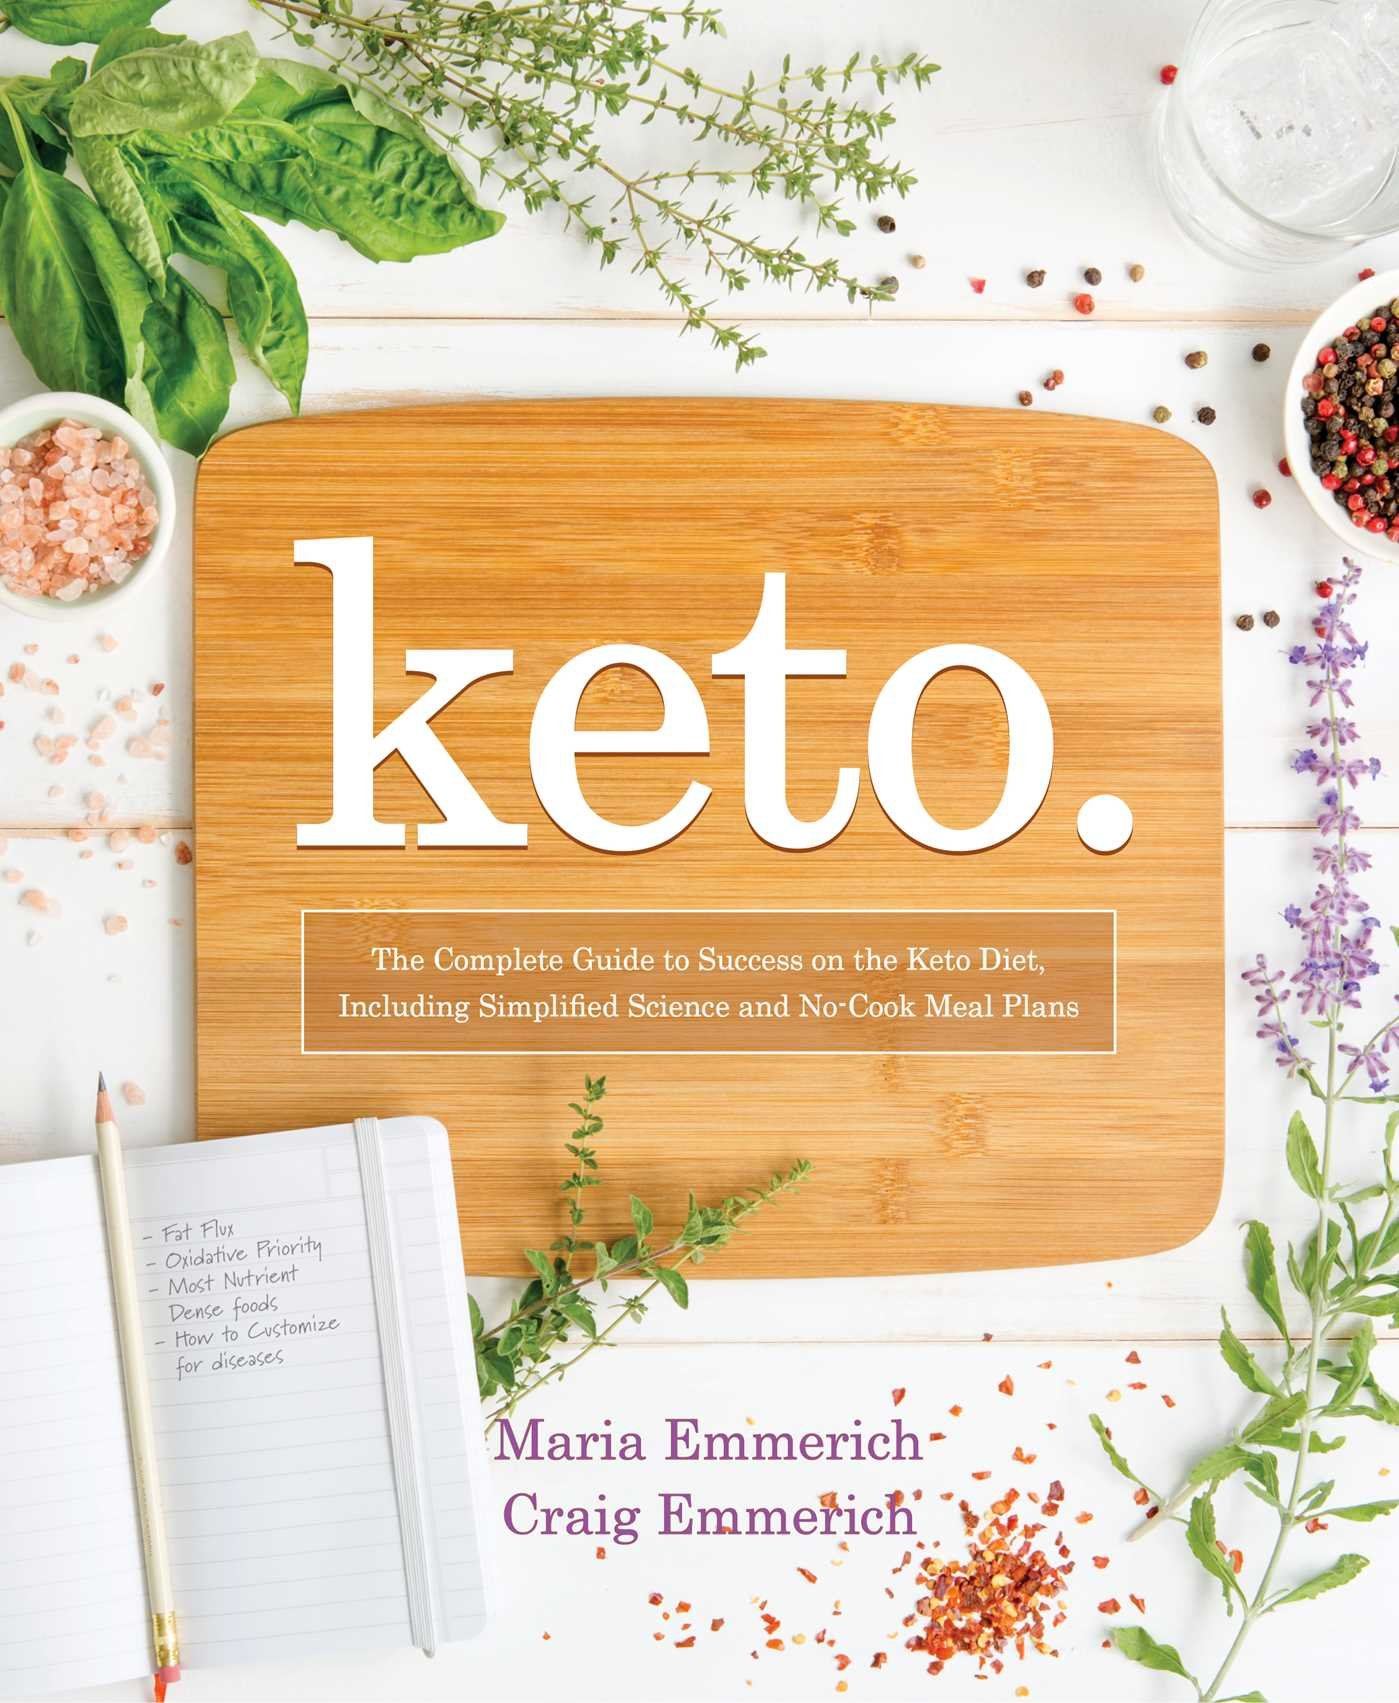 Keto: The Complete Guide to Success on The